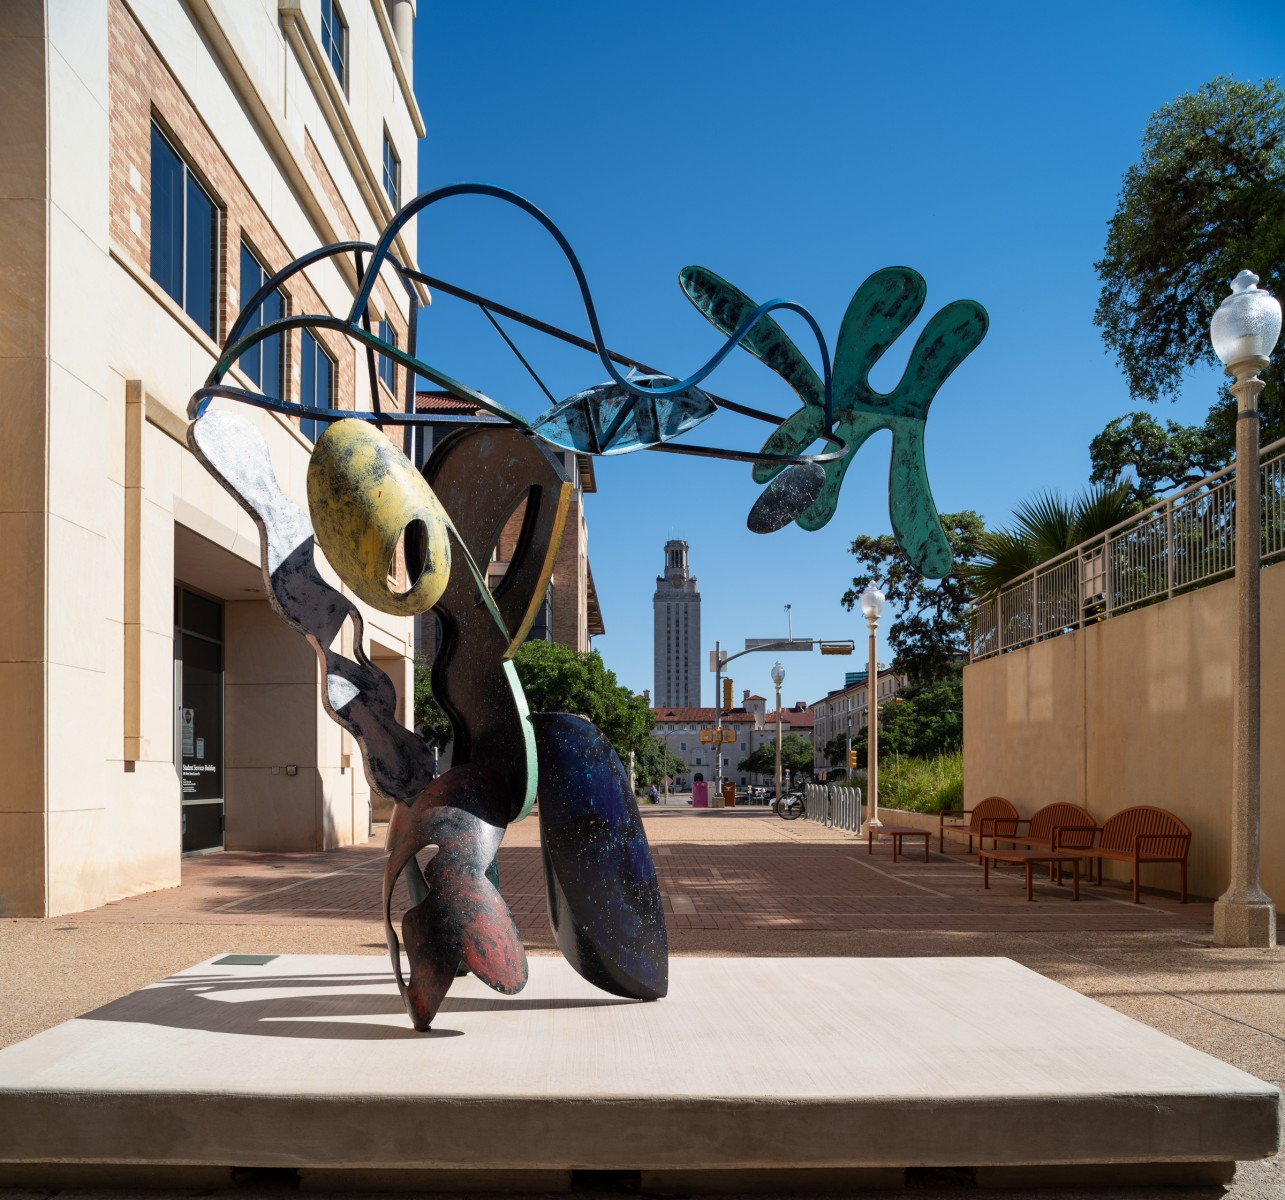 A large bendy sculpture with parts colored in different colors in a courtyard as seen from behind with the UT Tower framed by the sculpture